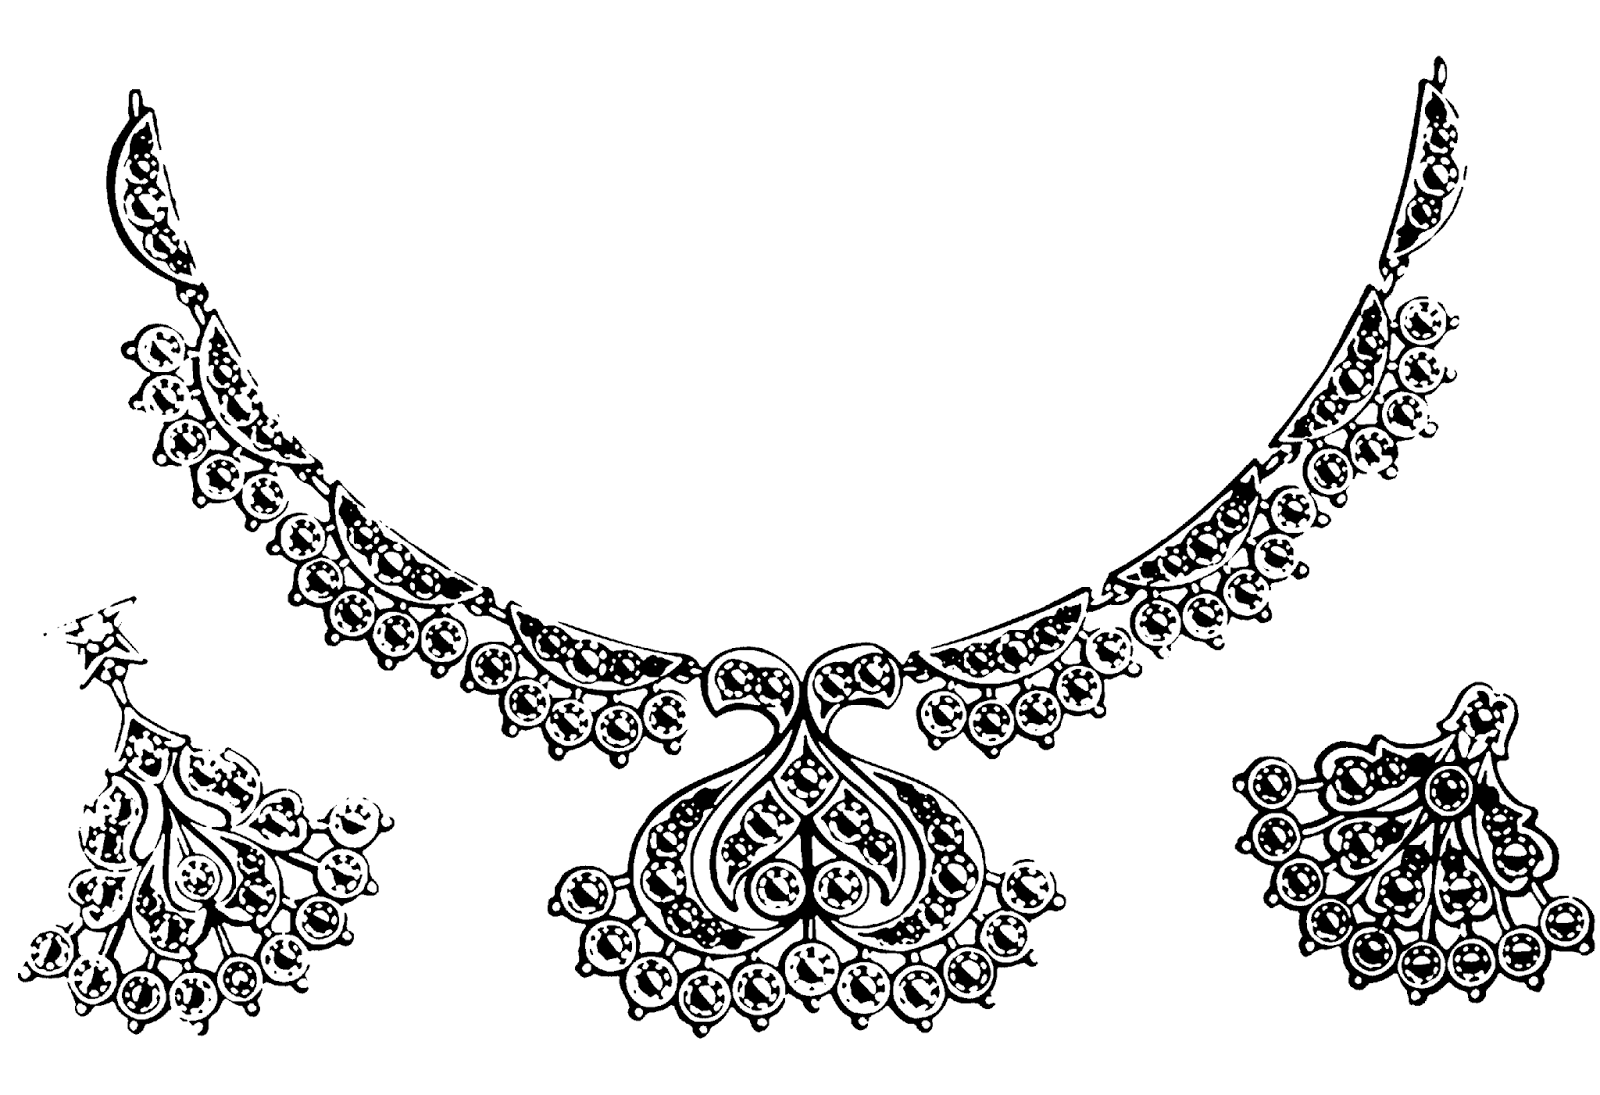 Free Jewelry Clipart Black And White, Download Free Clip Art.